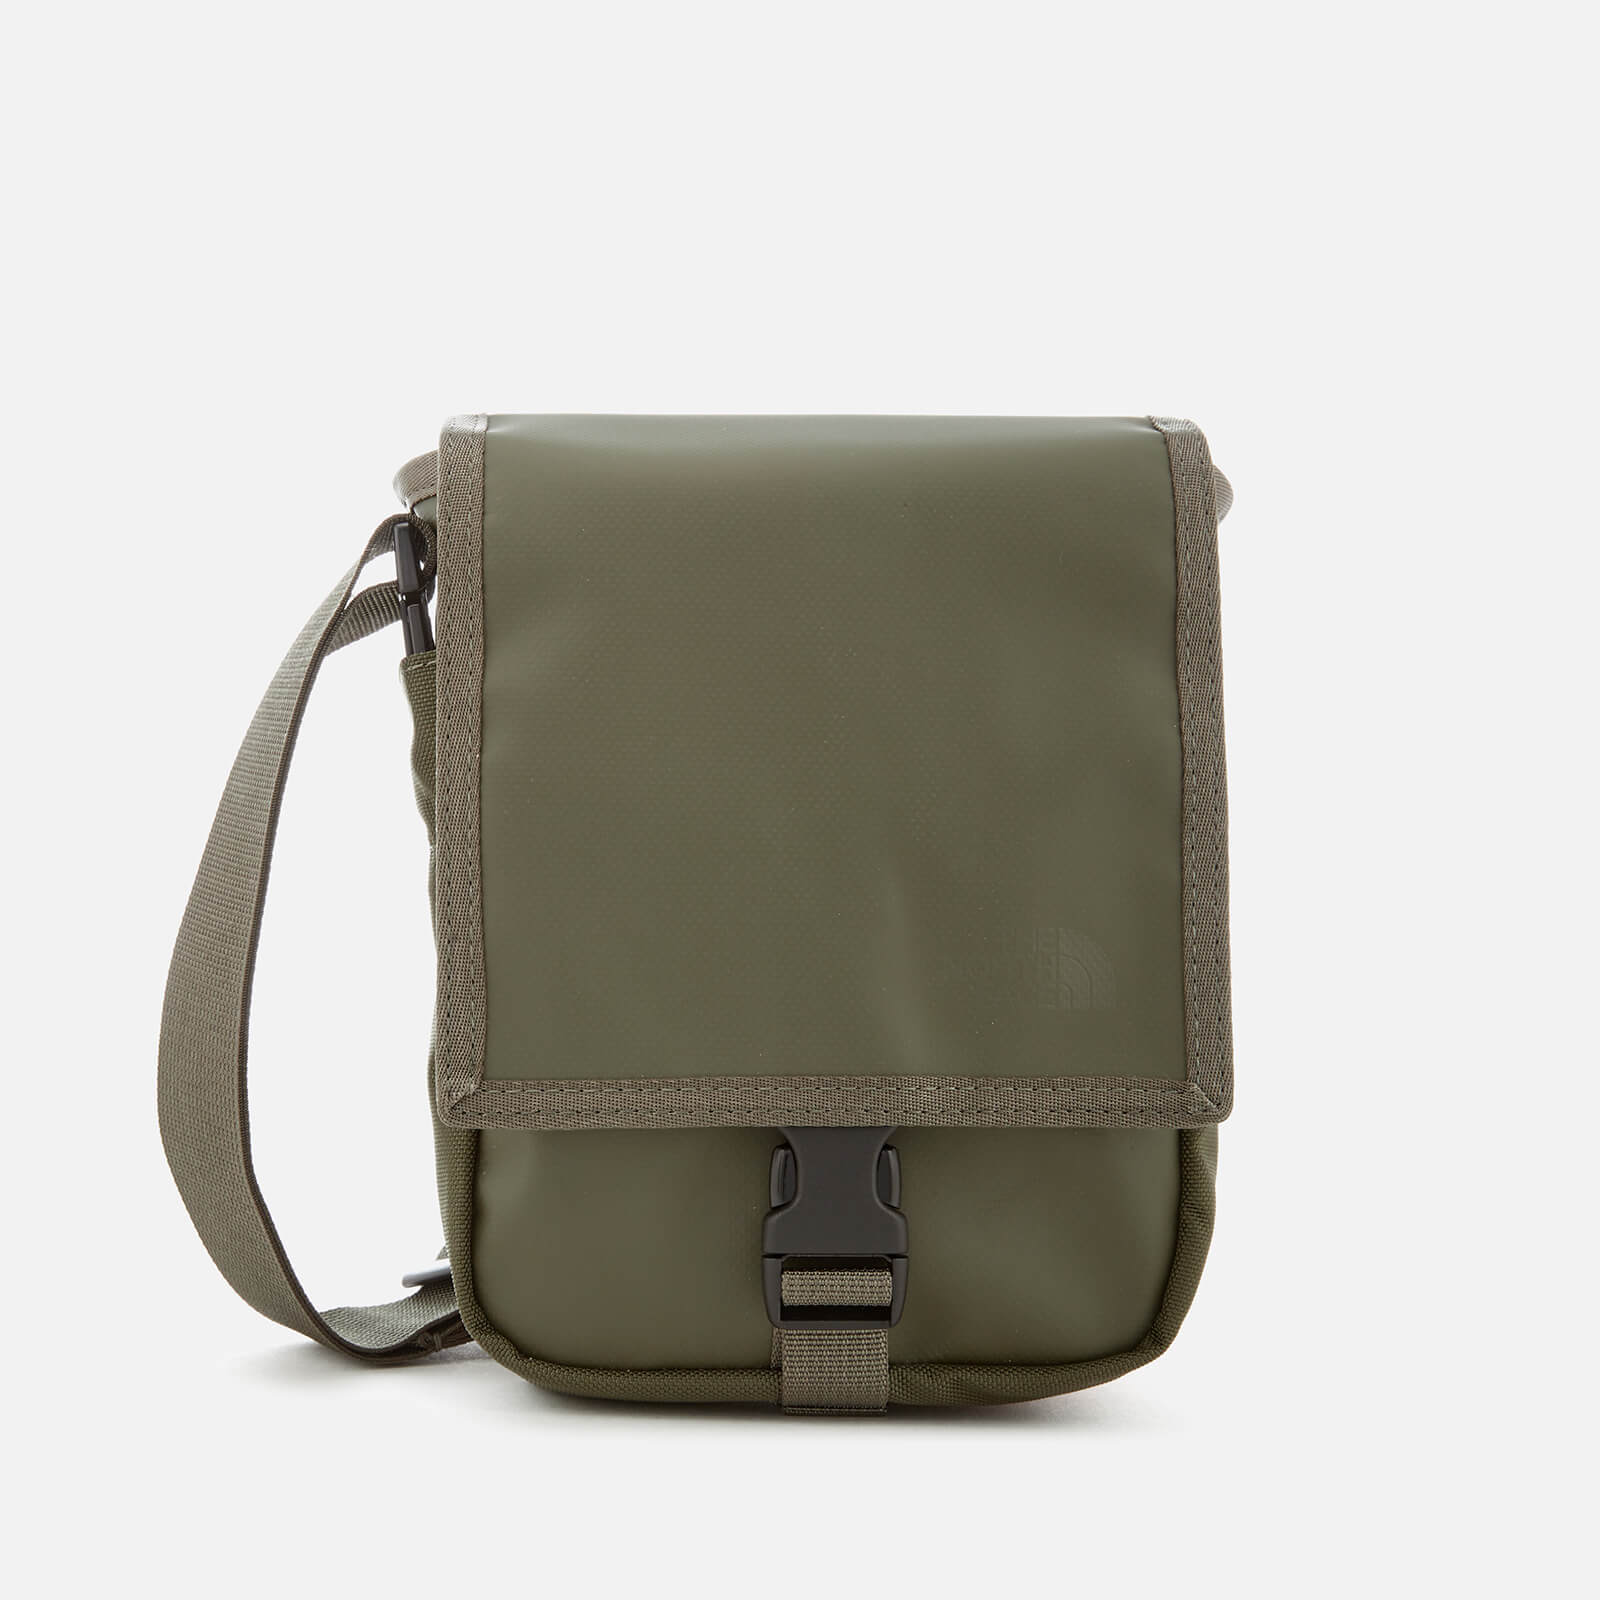 6dbe98c0a The North Face Bardu Bag - New Taupe/Green